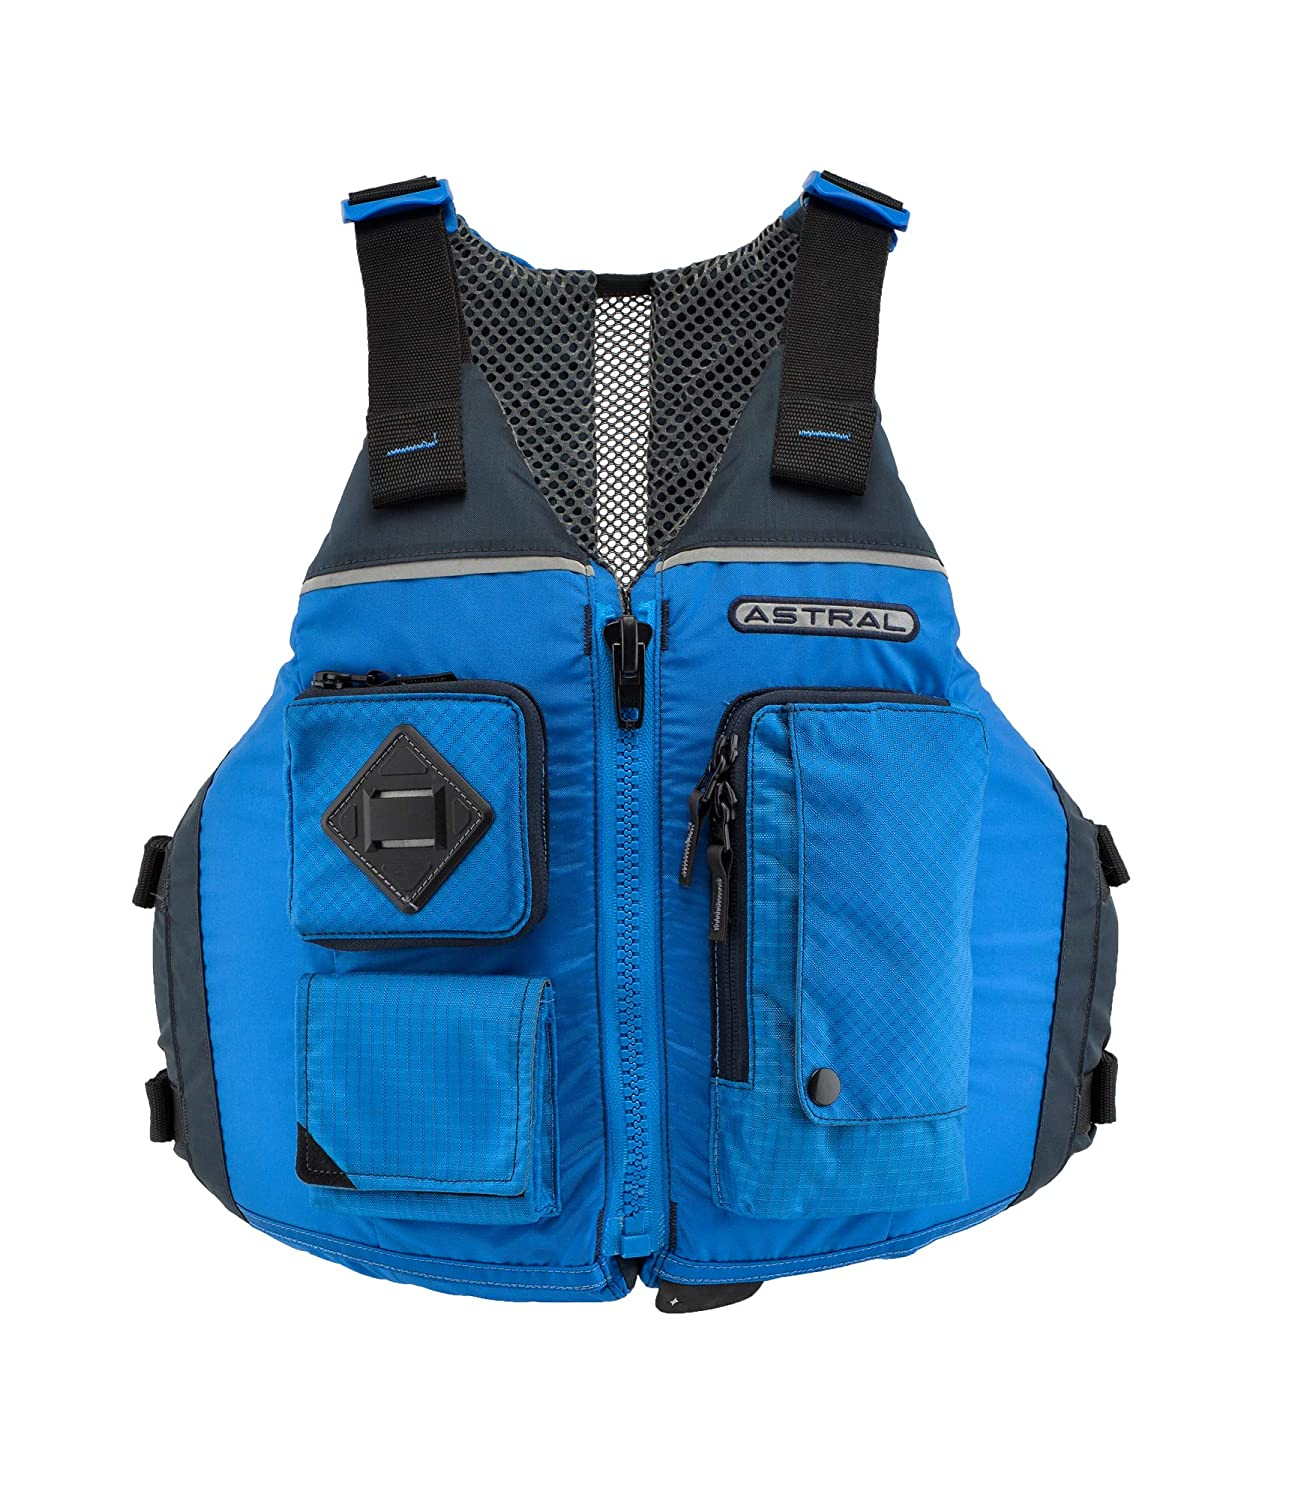 Astral Fishing Life Jacket PFD